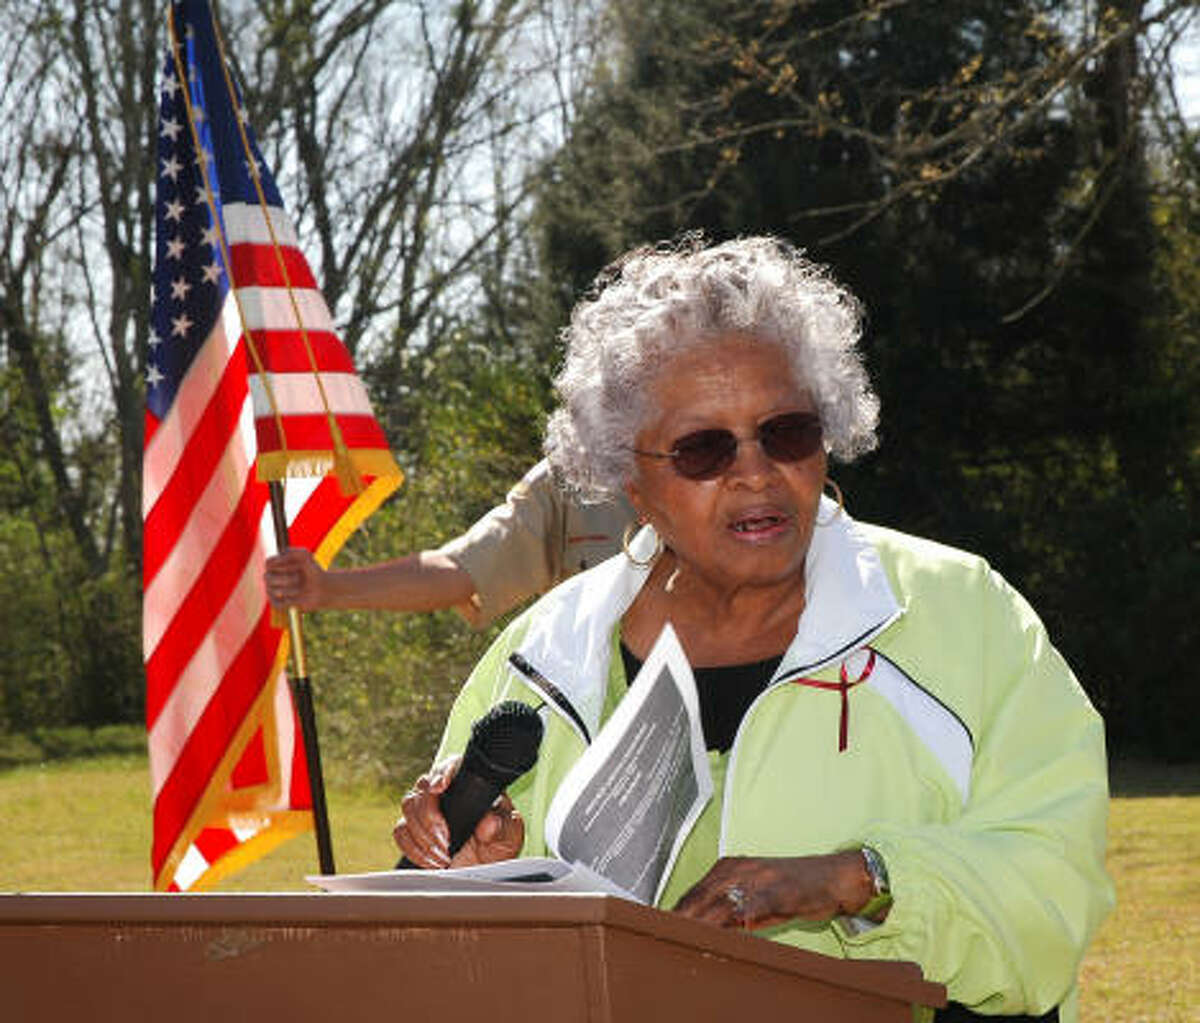 Viola Butler Outley, related to descendents of David Outley - Alief's first black educator and namesake of Outley Elementary School in the Alief Independent School District - speaks during the ceremony that unveiled a state historical marker at the site of Prairie Grove cemetery, 13685 Renn Road and Eldridge Parkway.